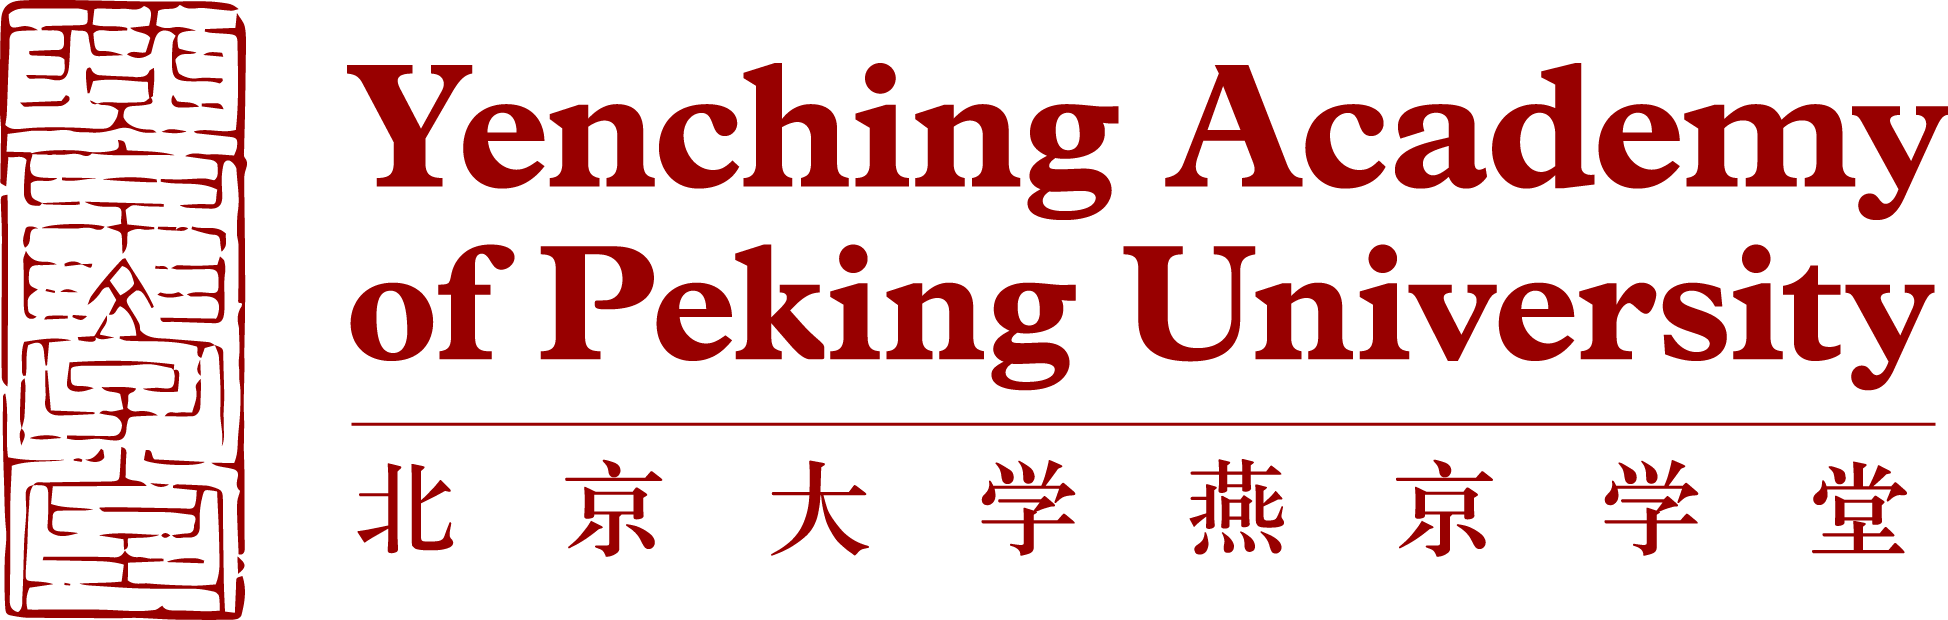 Yenching Academy of Peking University Scholarship 2018 in China (Fully Funded)